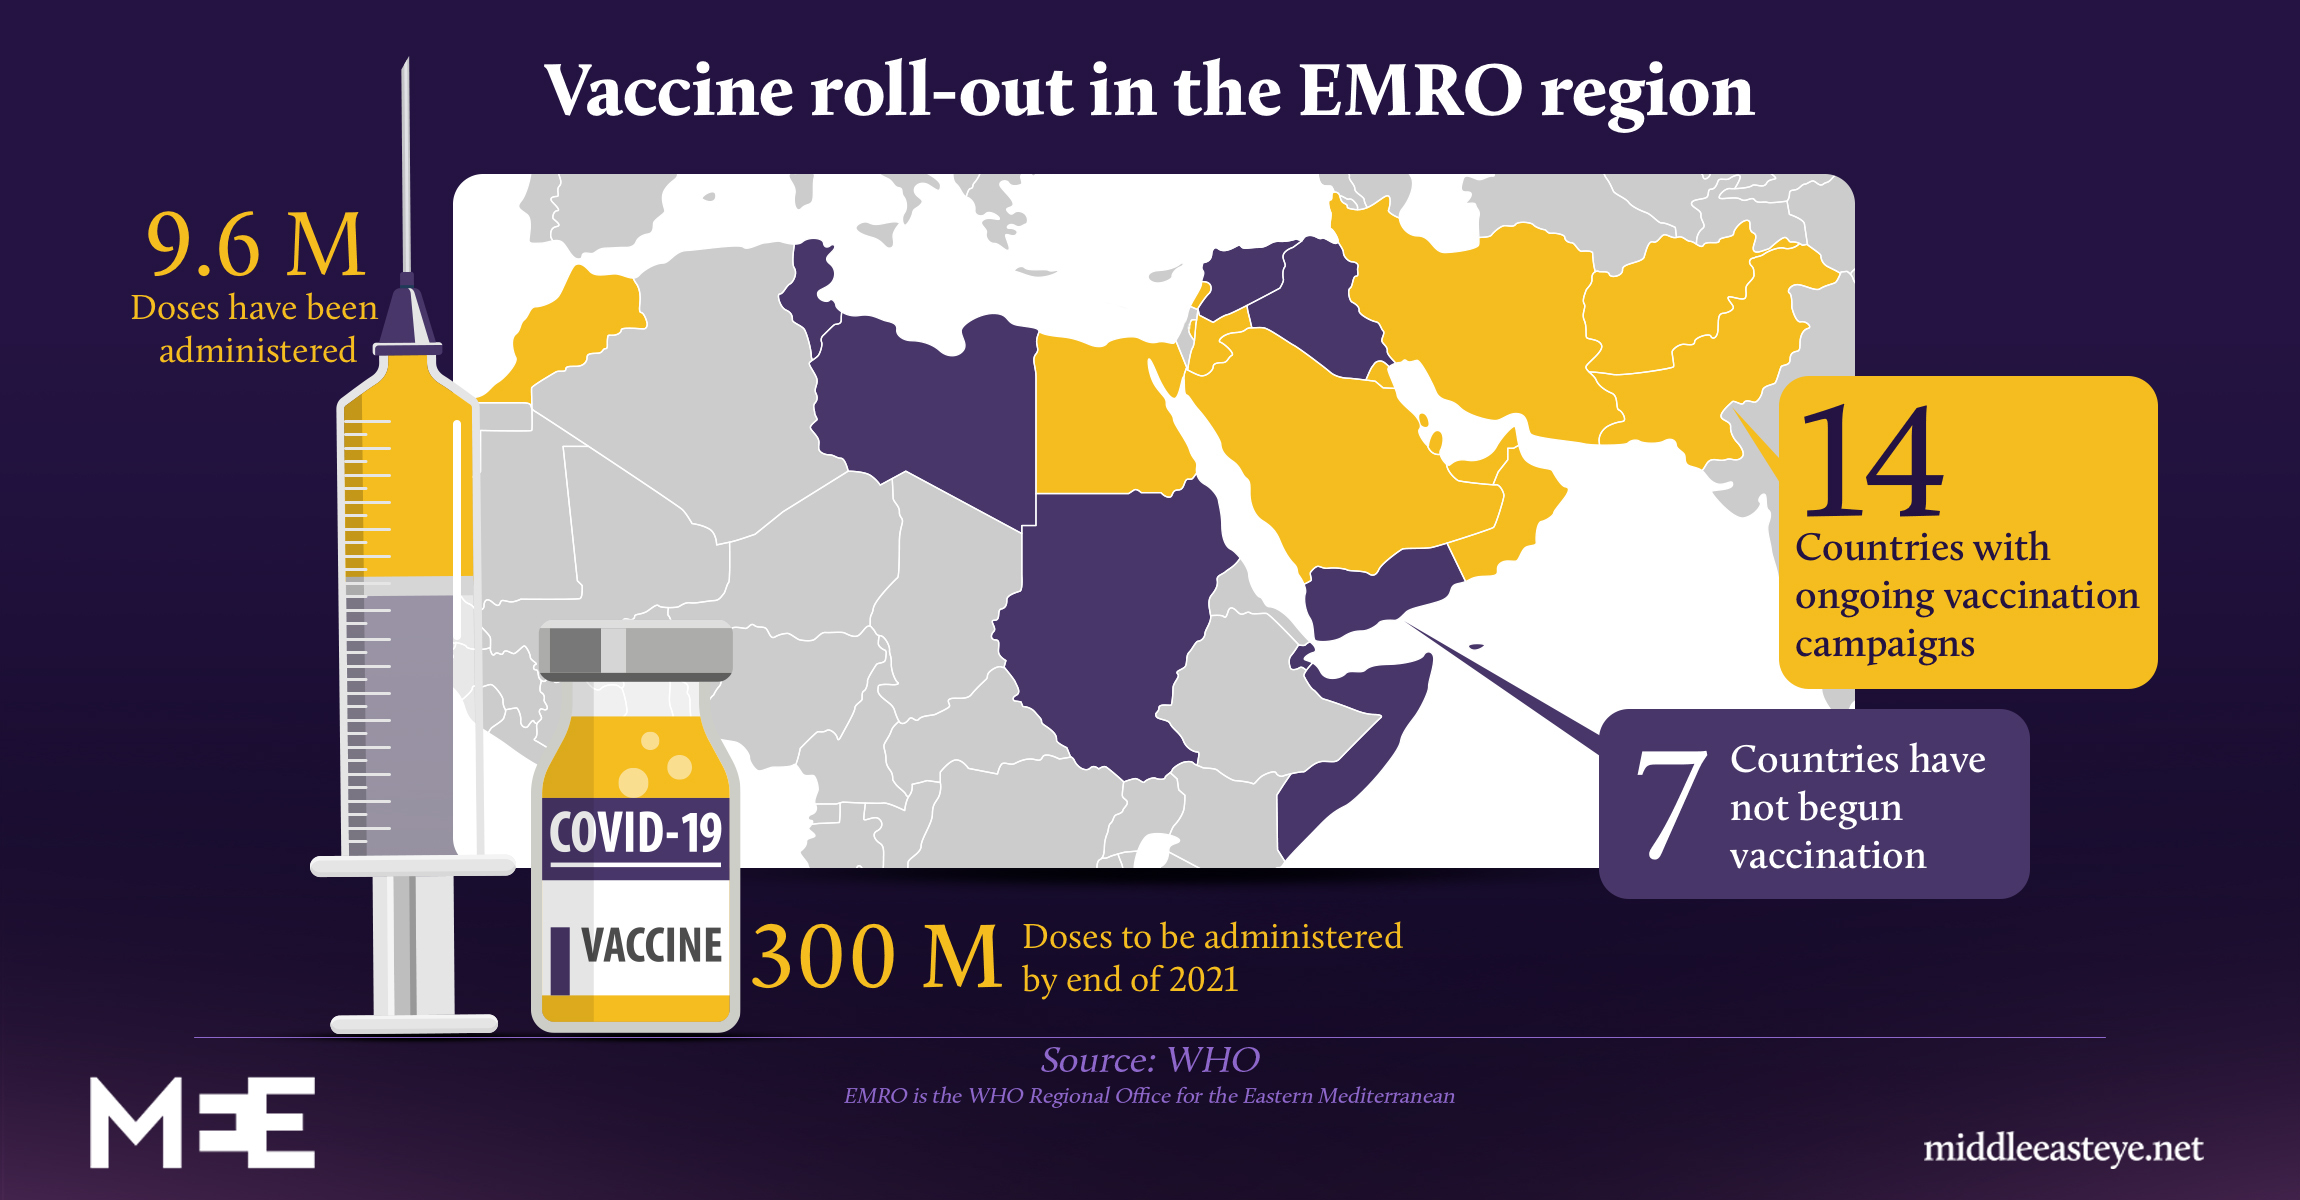 Covid-19 vaccine roll-out in the EMRO region - infographic